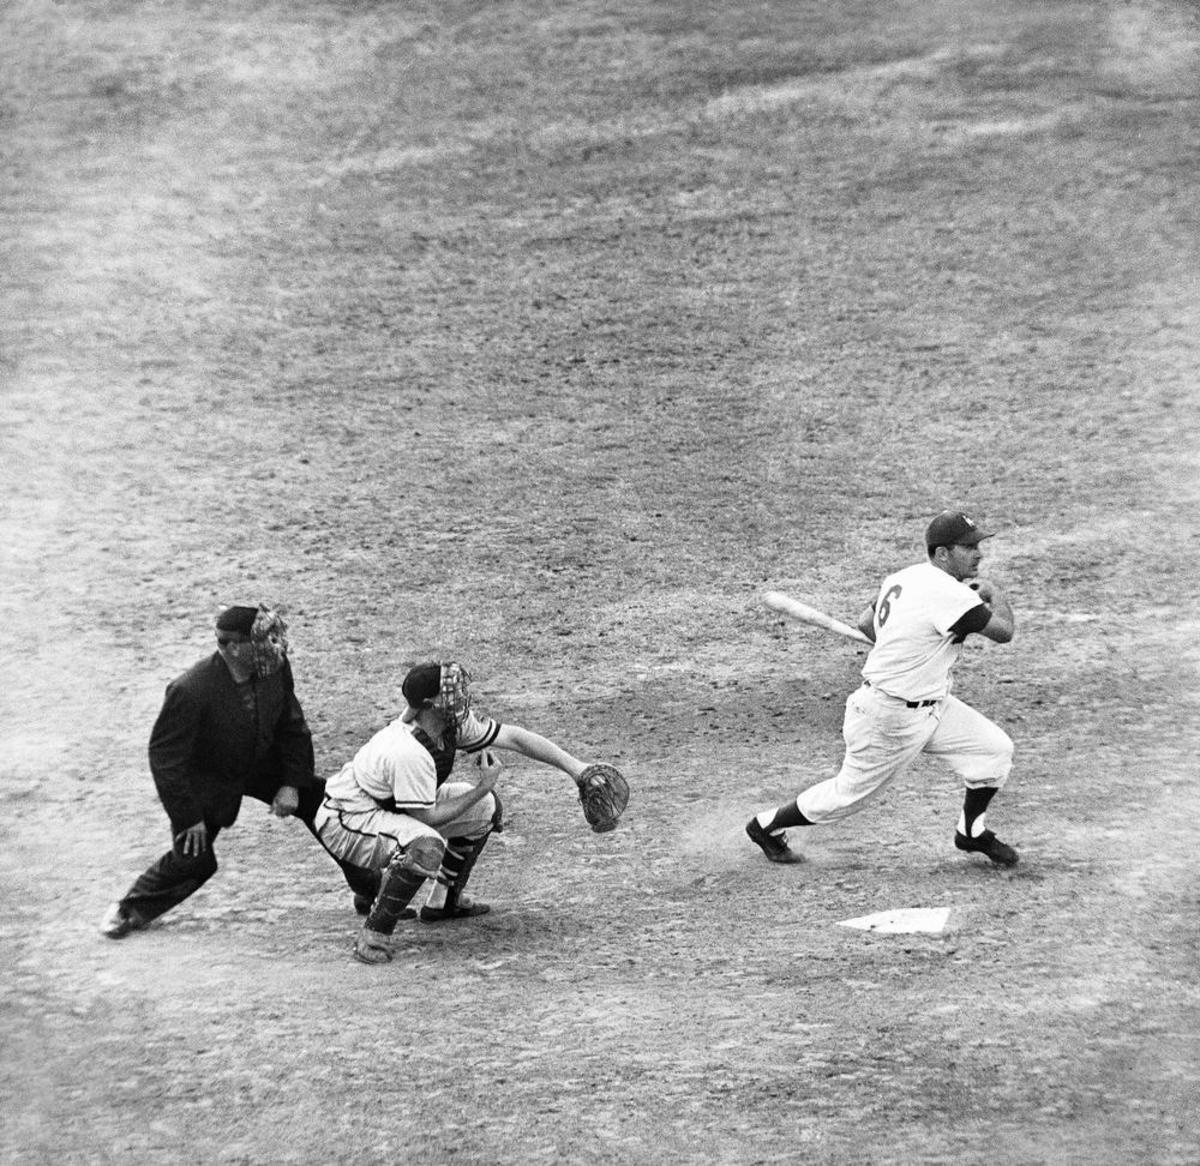 Furillo lining a hit during the 1959 playoff with the Milwaukee Braves. He was out of baseball a year later.